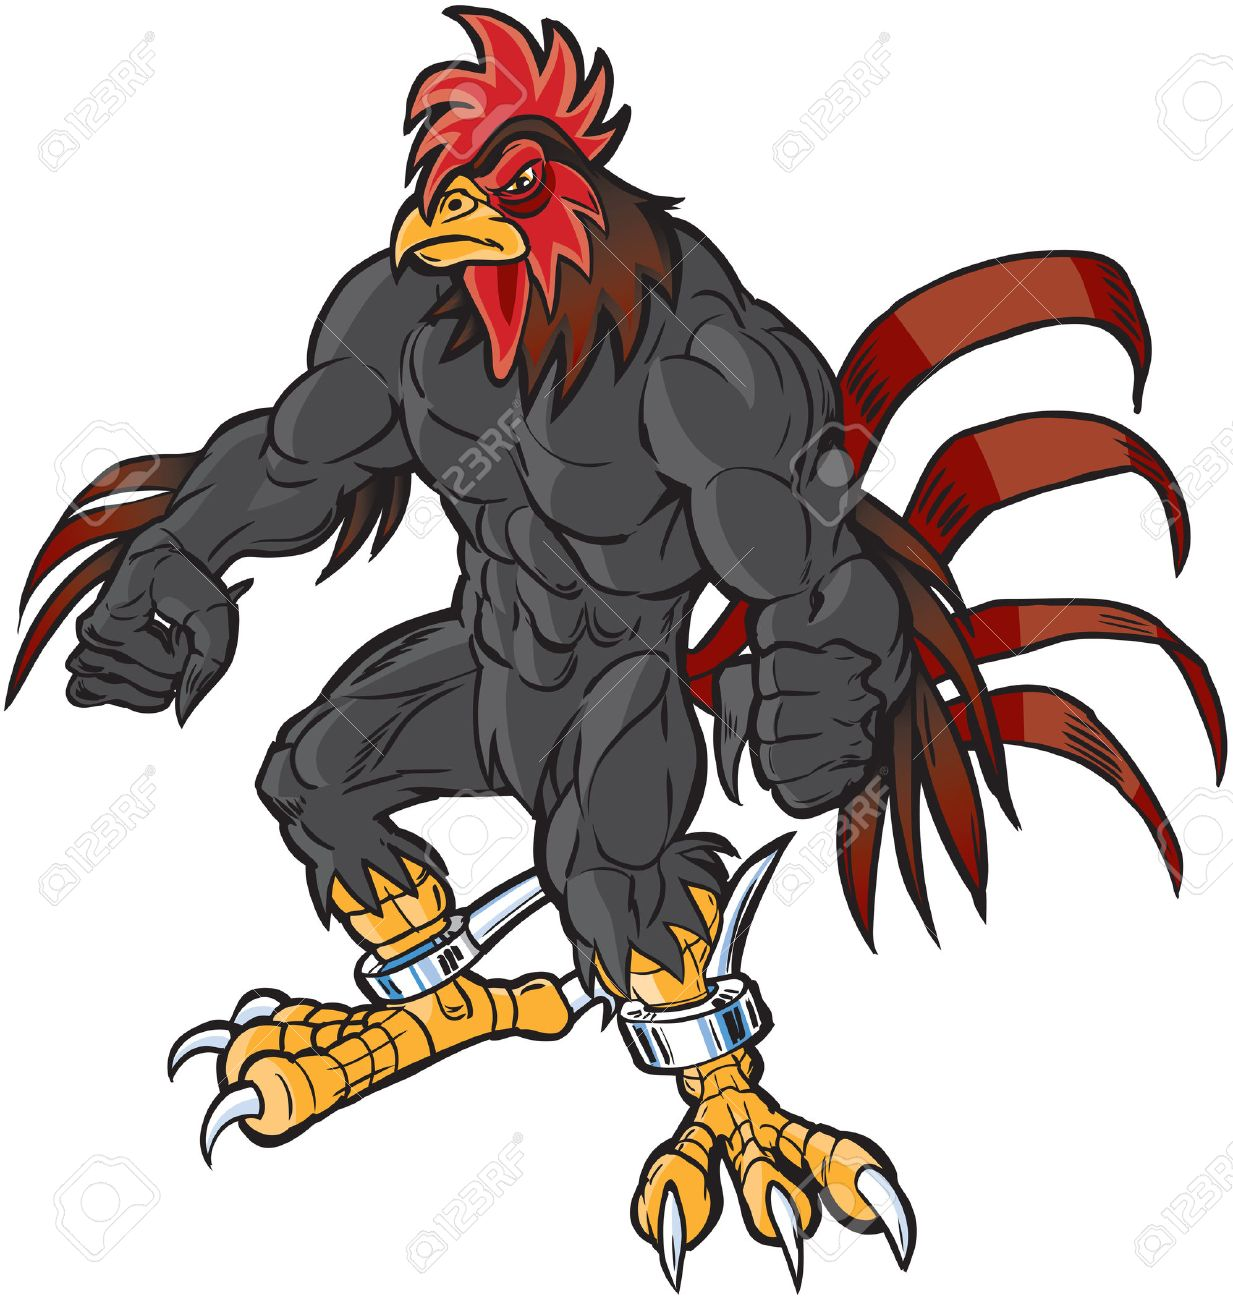 111 gamecock cliparts stock vector and royalty free gamecock rh 123rf com carolina gamecock clipart gamecock clipart free